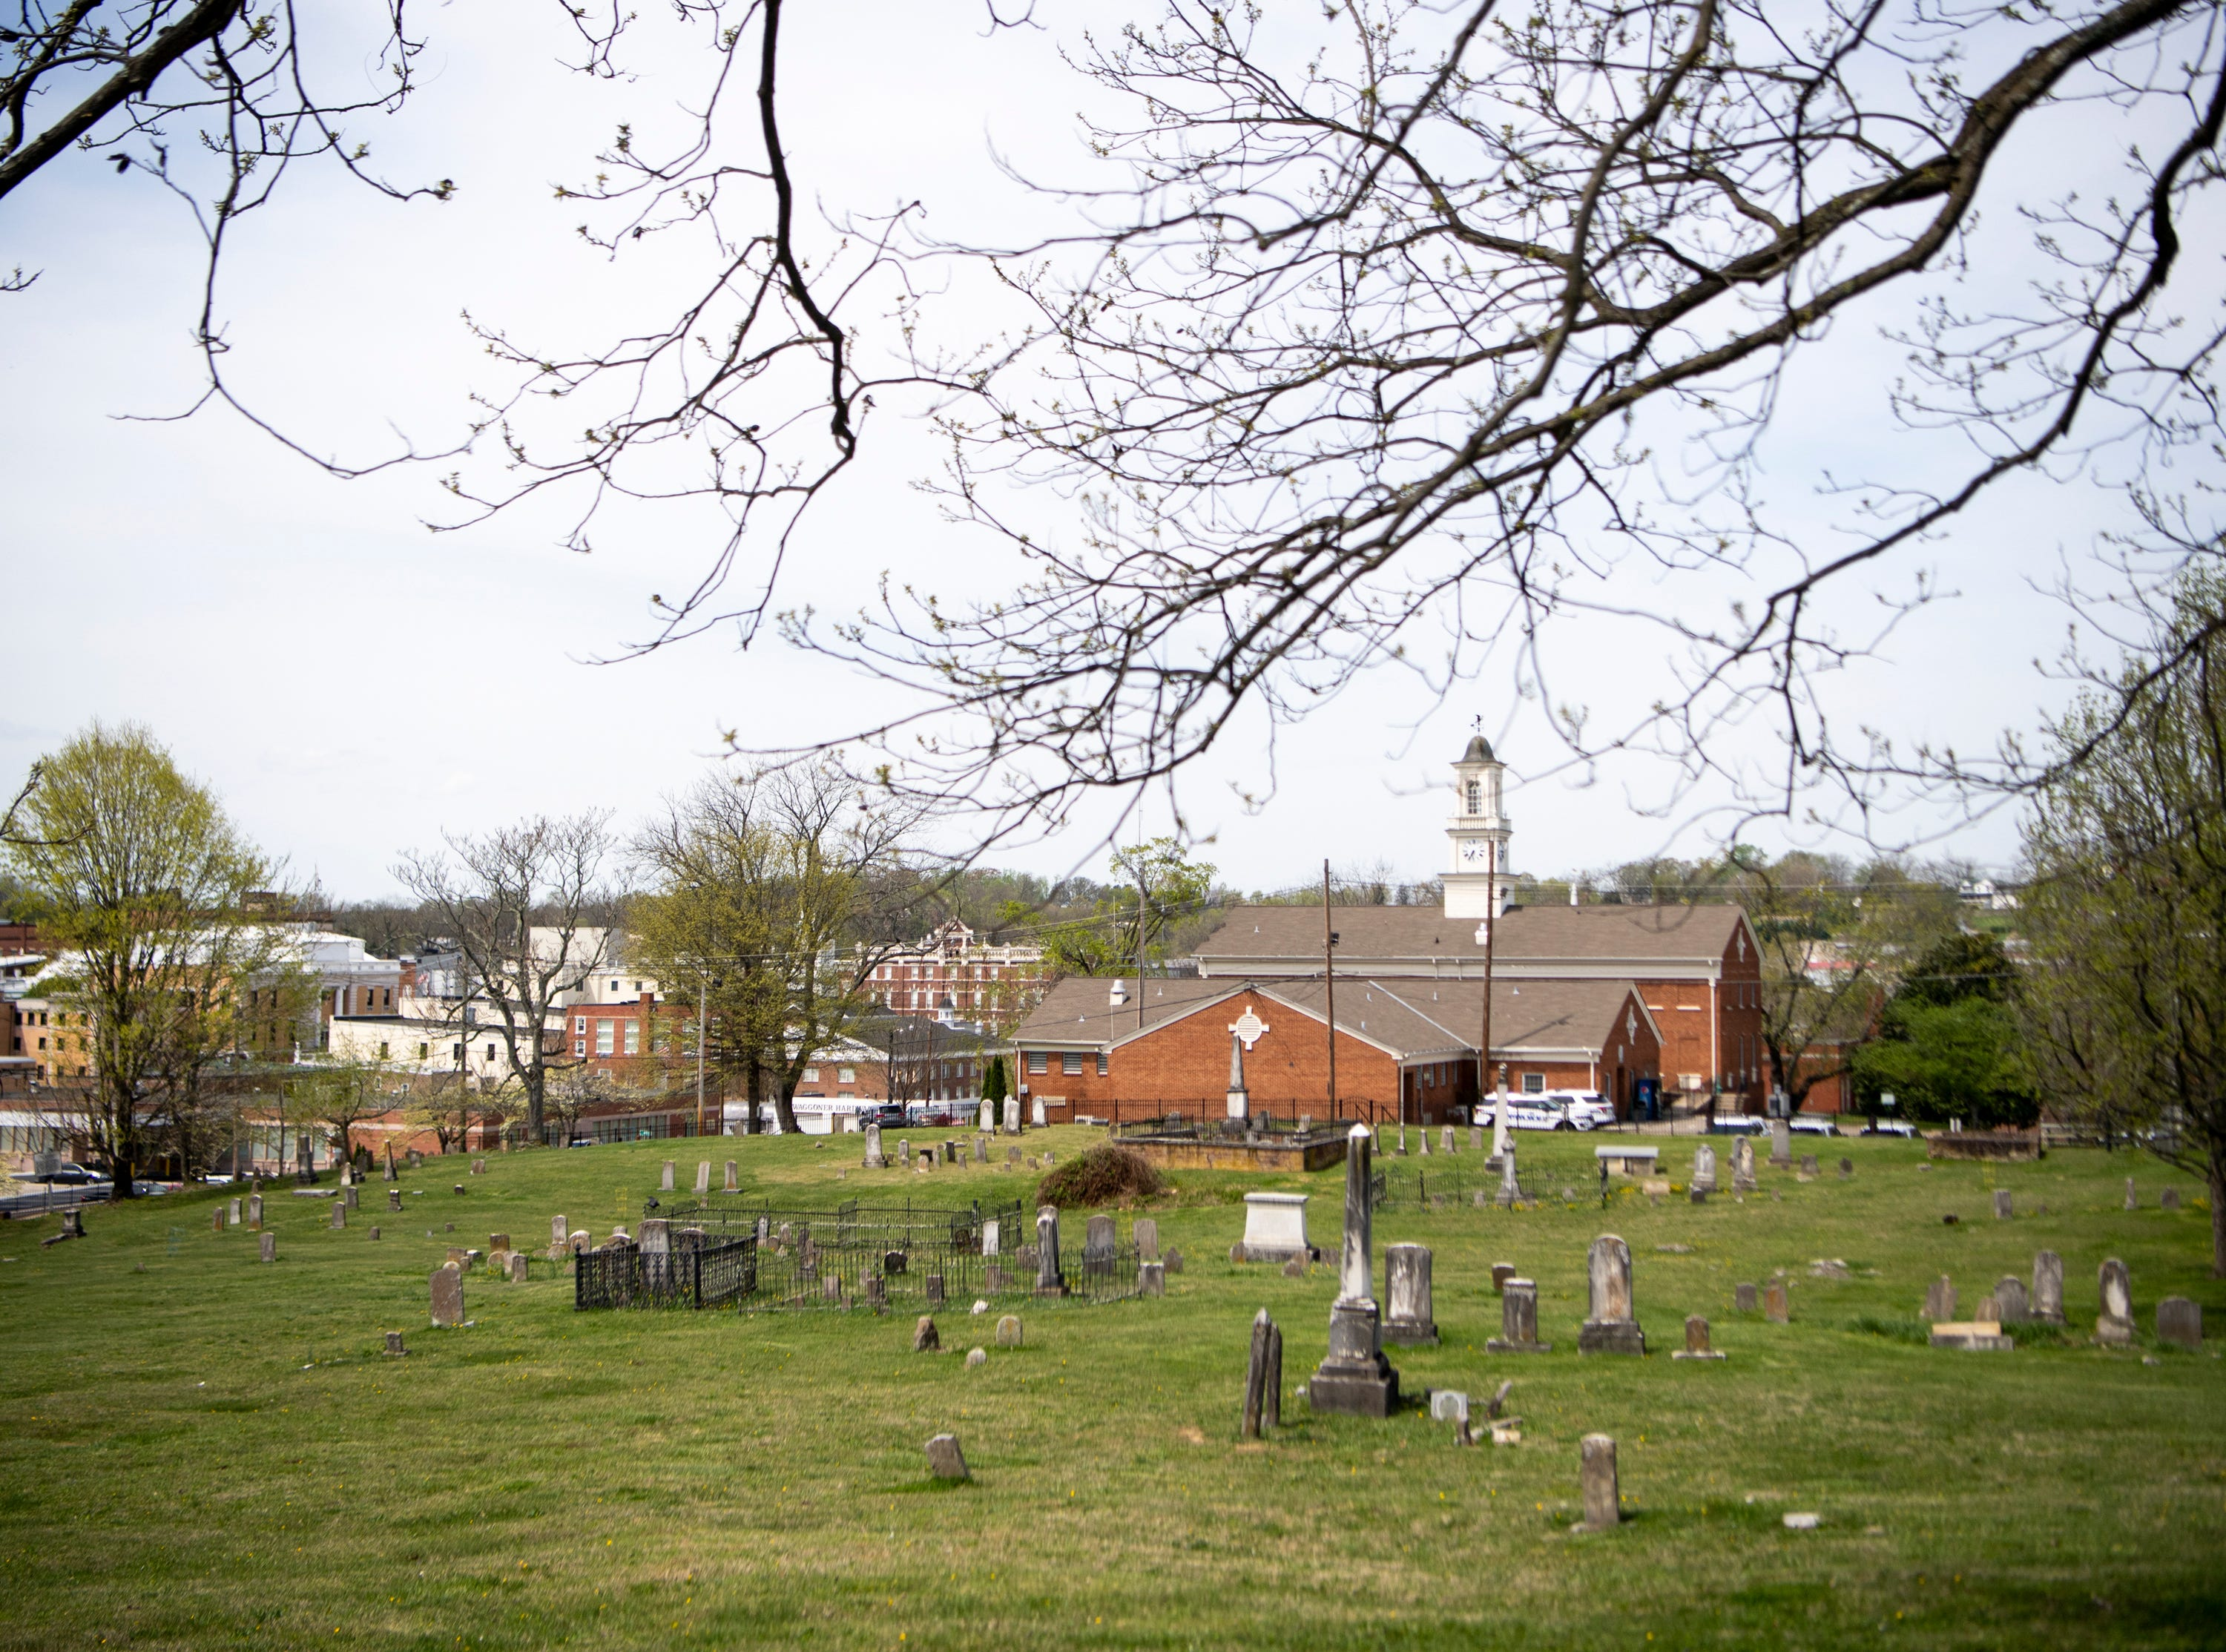 Greeneville, Tenn. pictured from a cemetery on Thursday, April 11, 2019.